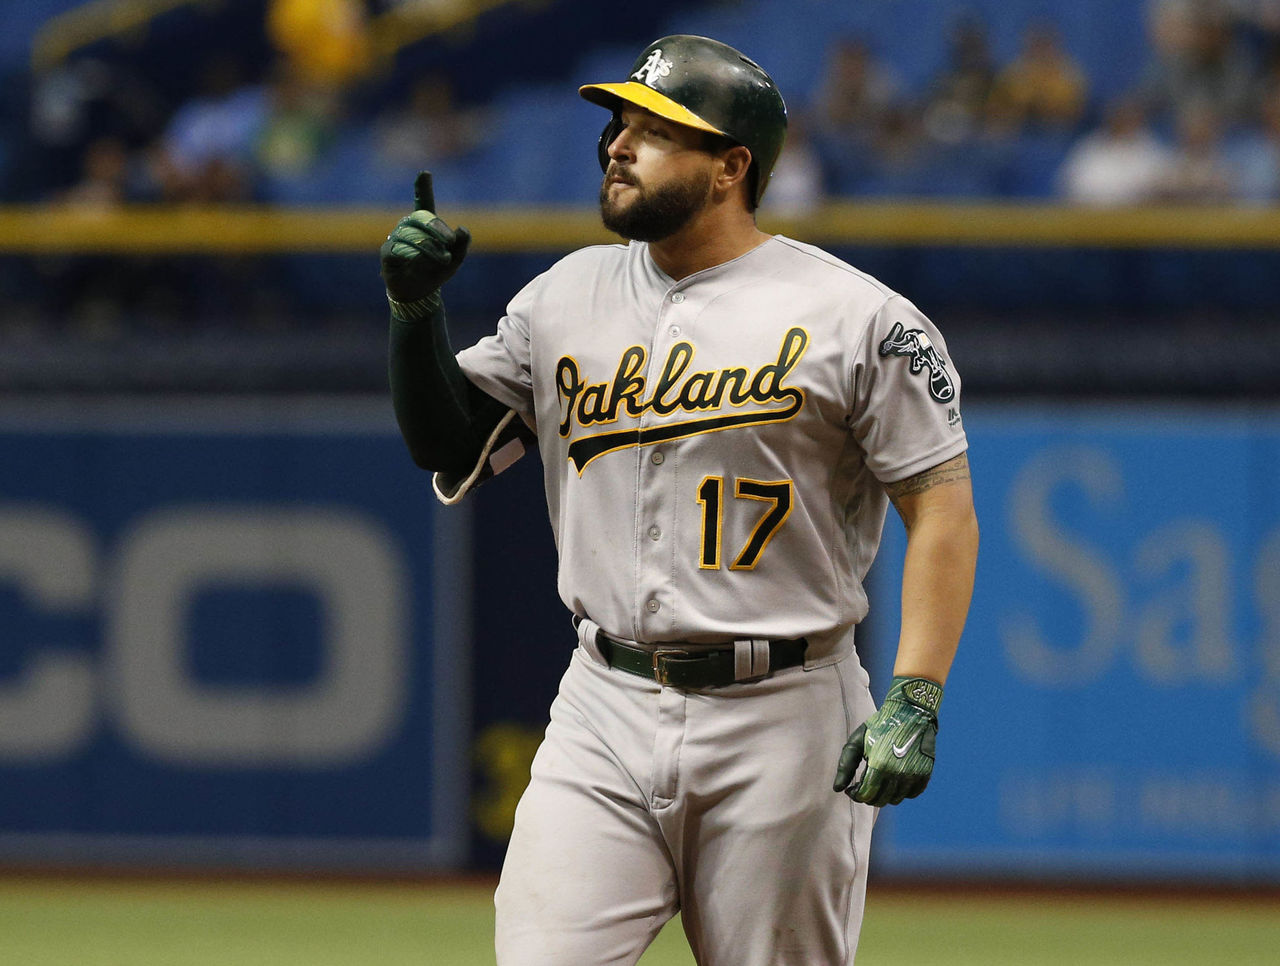 Cropped 2017 06 11t021859z 1983642020 nocid rtrmadp 3 mlb game two oakland athletics at tampa bay rays